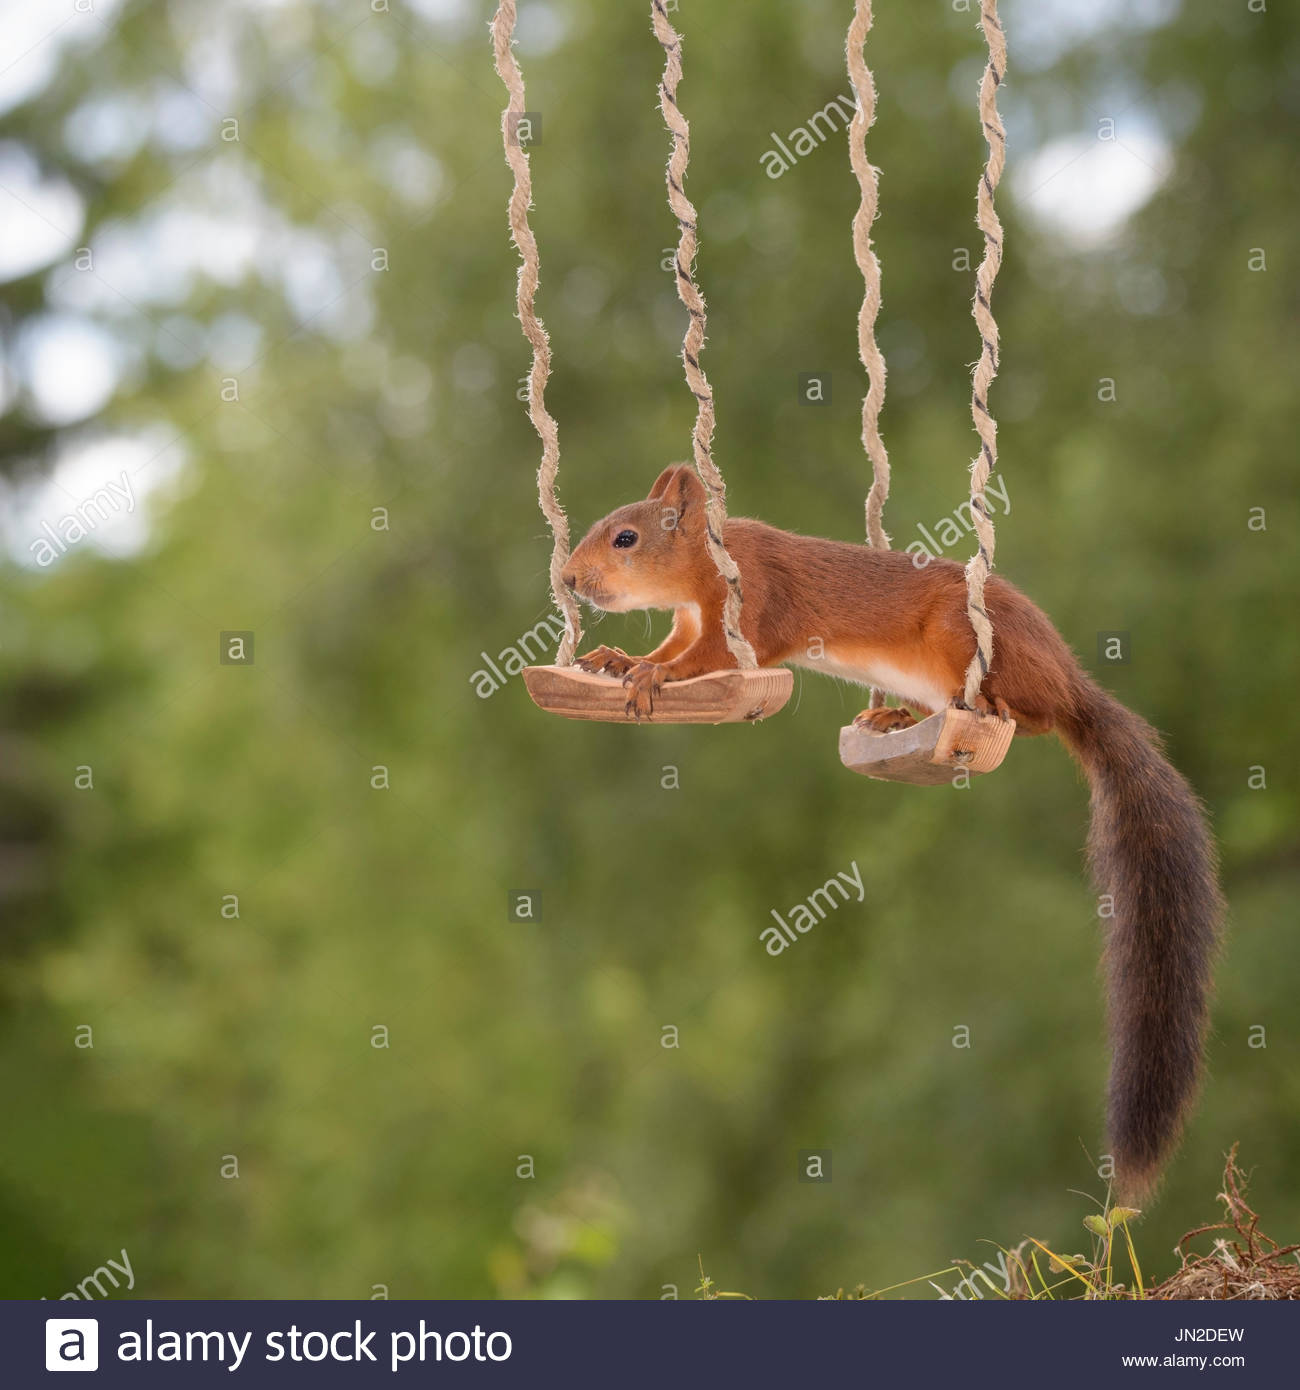 Animal Two Humor Stockfotos & Animal Two Humor Bilder - Seite 22 - Alamy